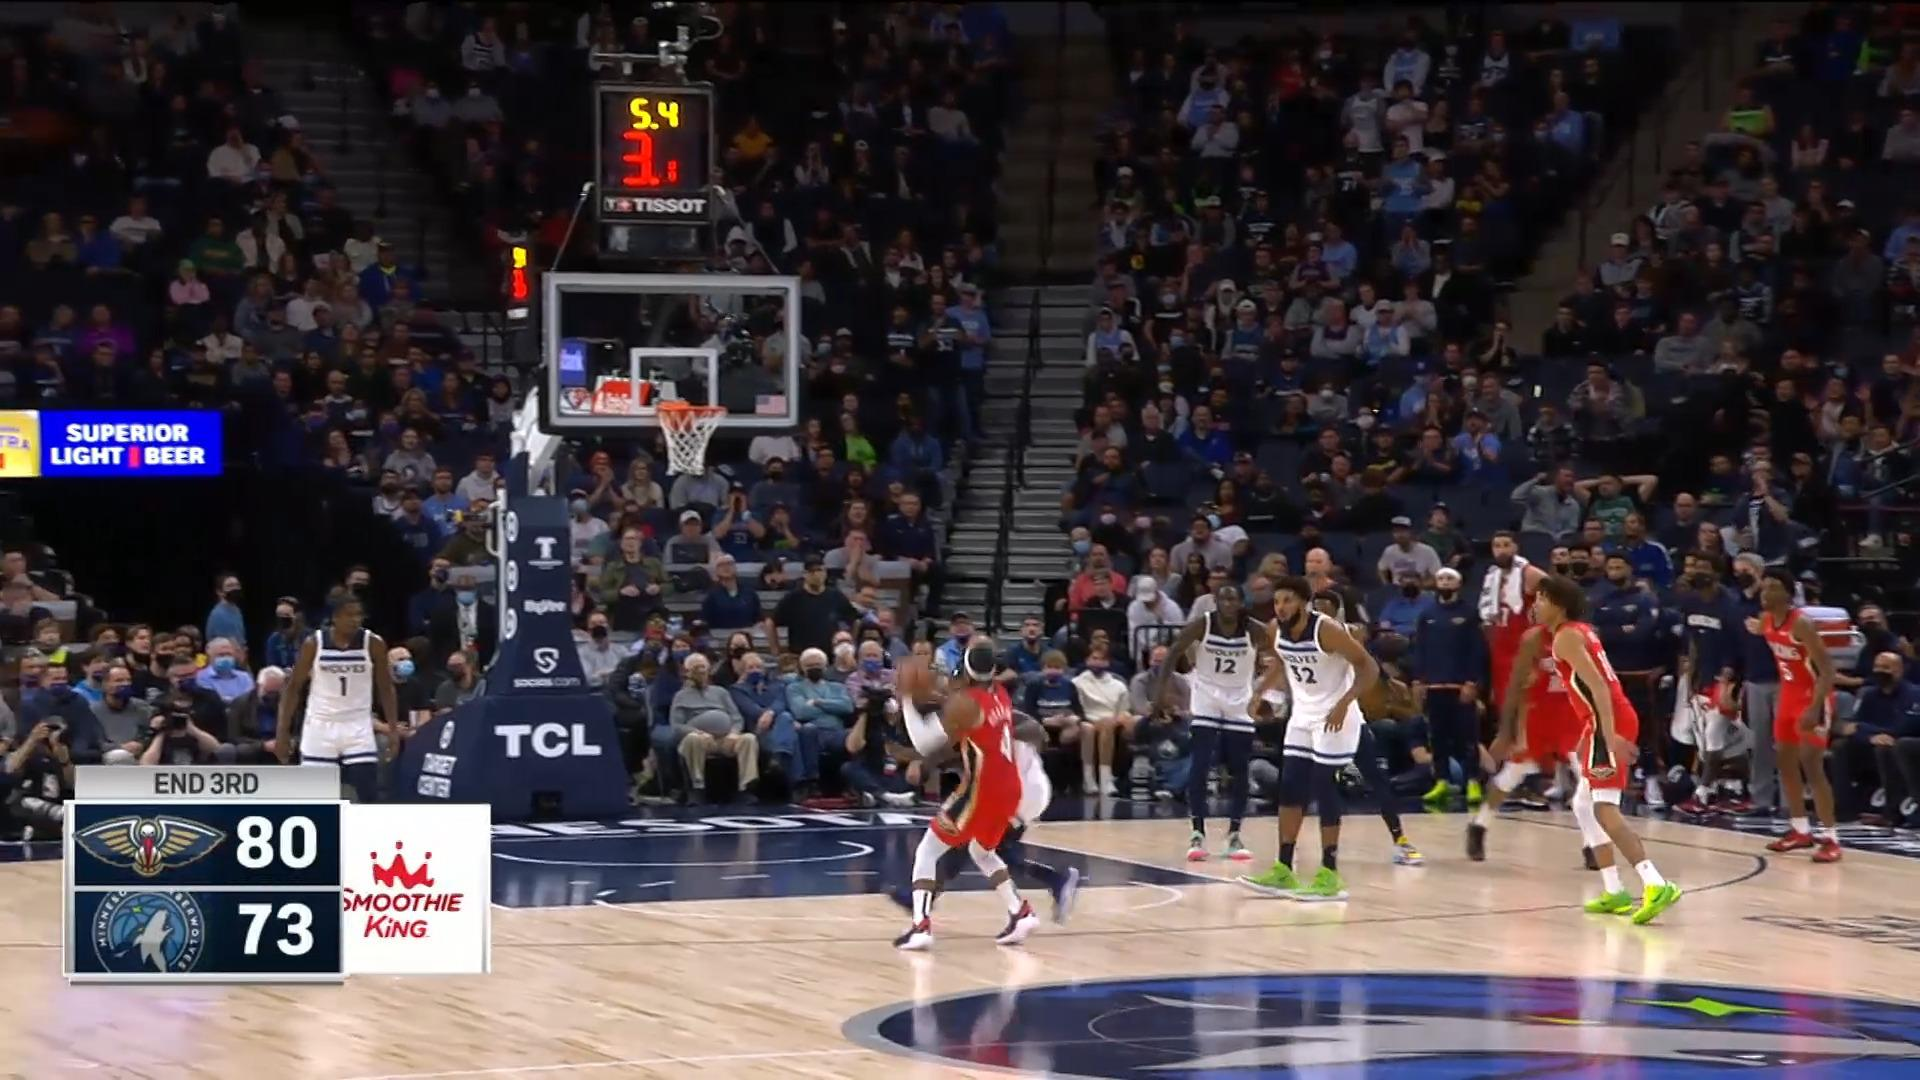 Devonte' Graham with the tough 3 | Pelicans at Timberwolves 10-25-21